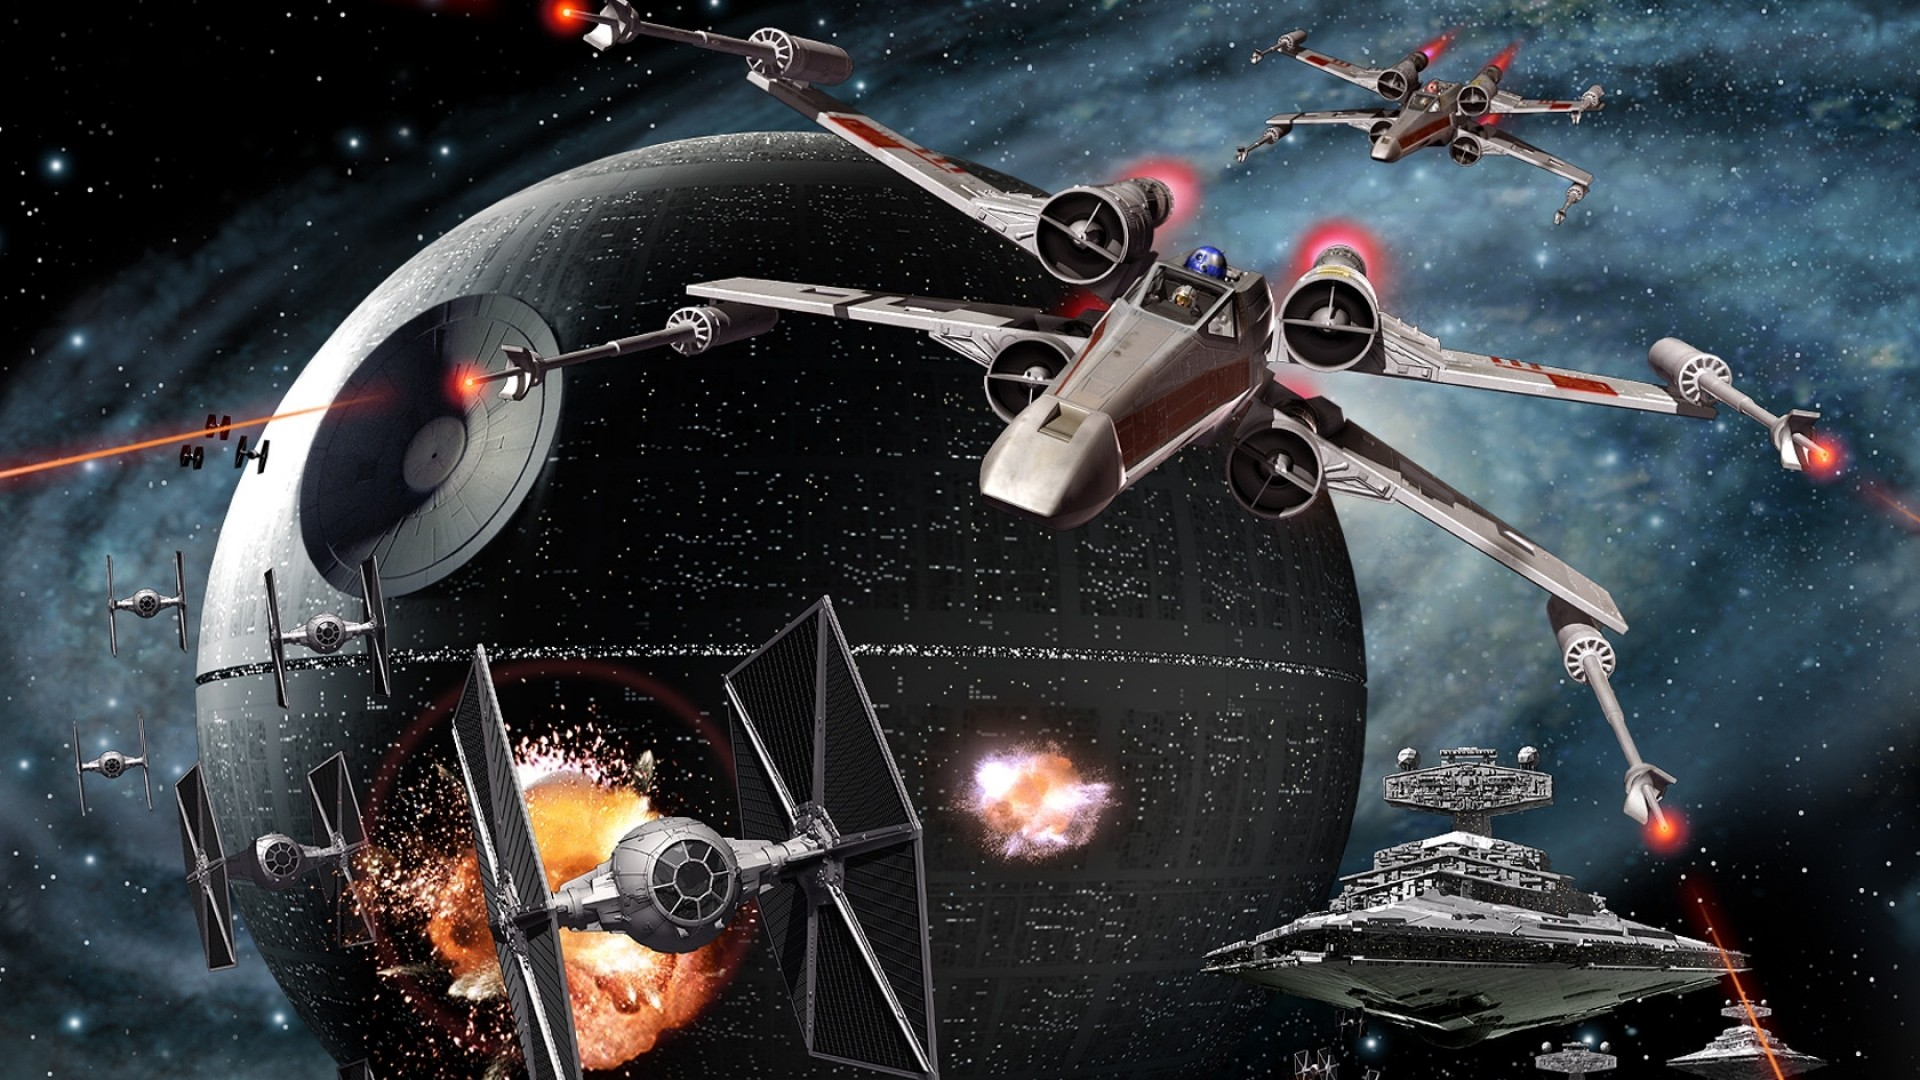 Star Wars Empire At War Hd Wallpaper Background Image 1920x1080 Id 679341 Wallpaper Abyss